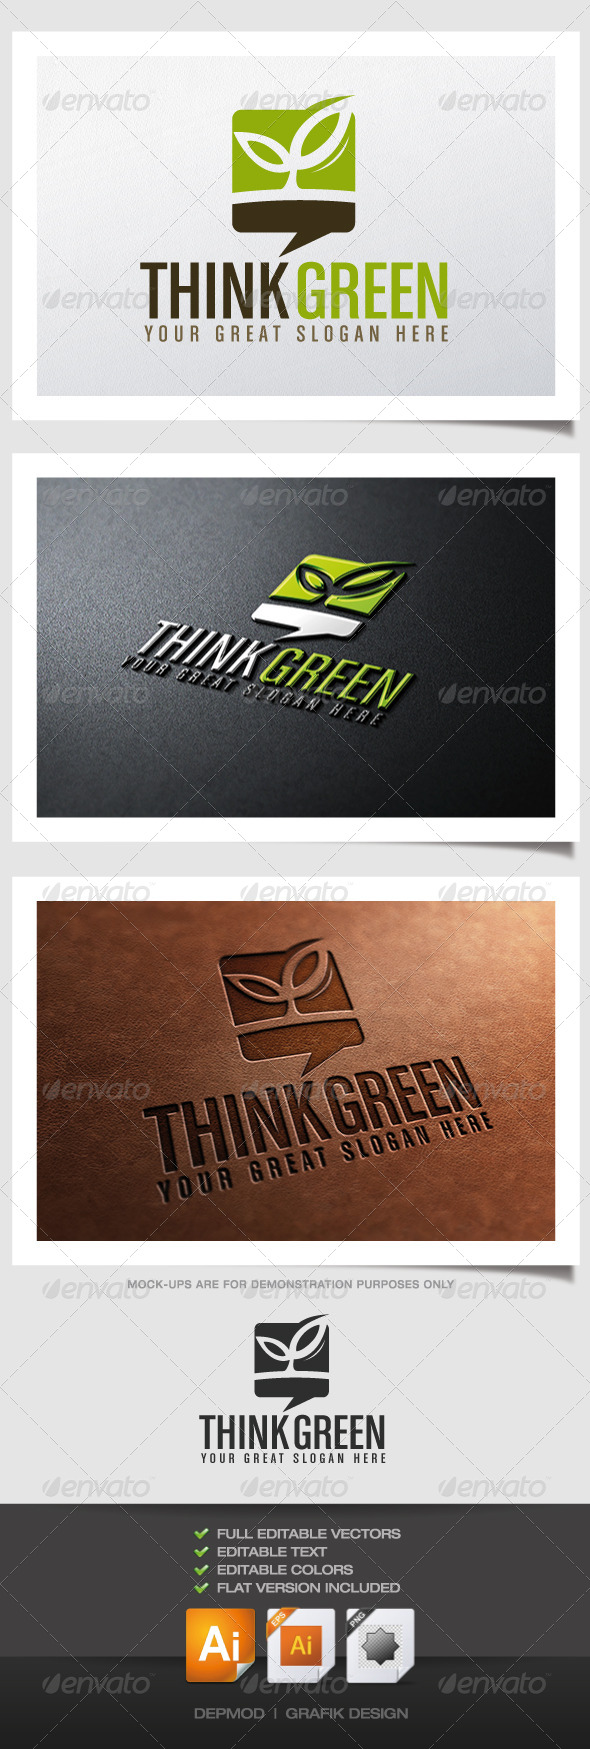 GraphicRiver Think Green Logo 4451988